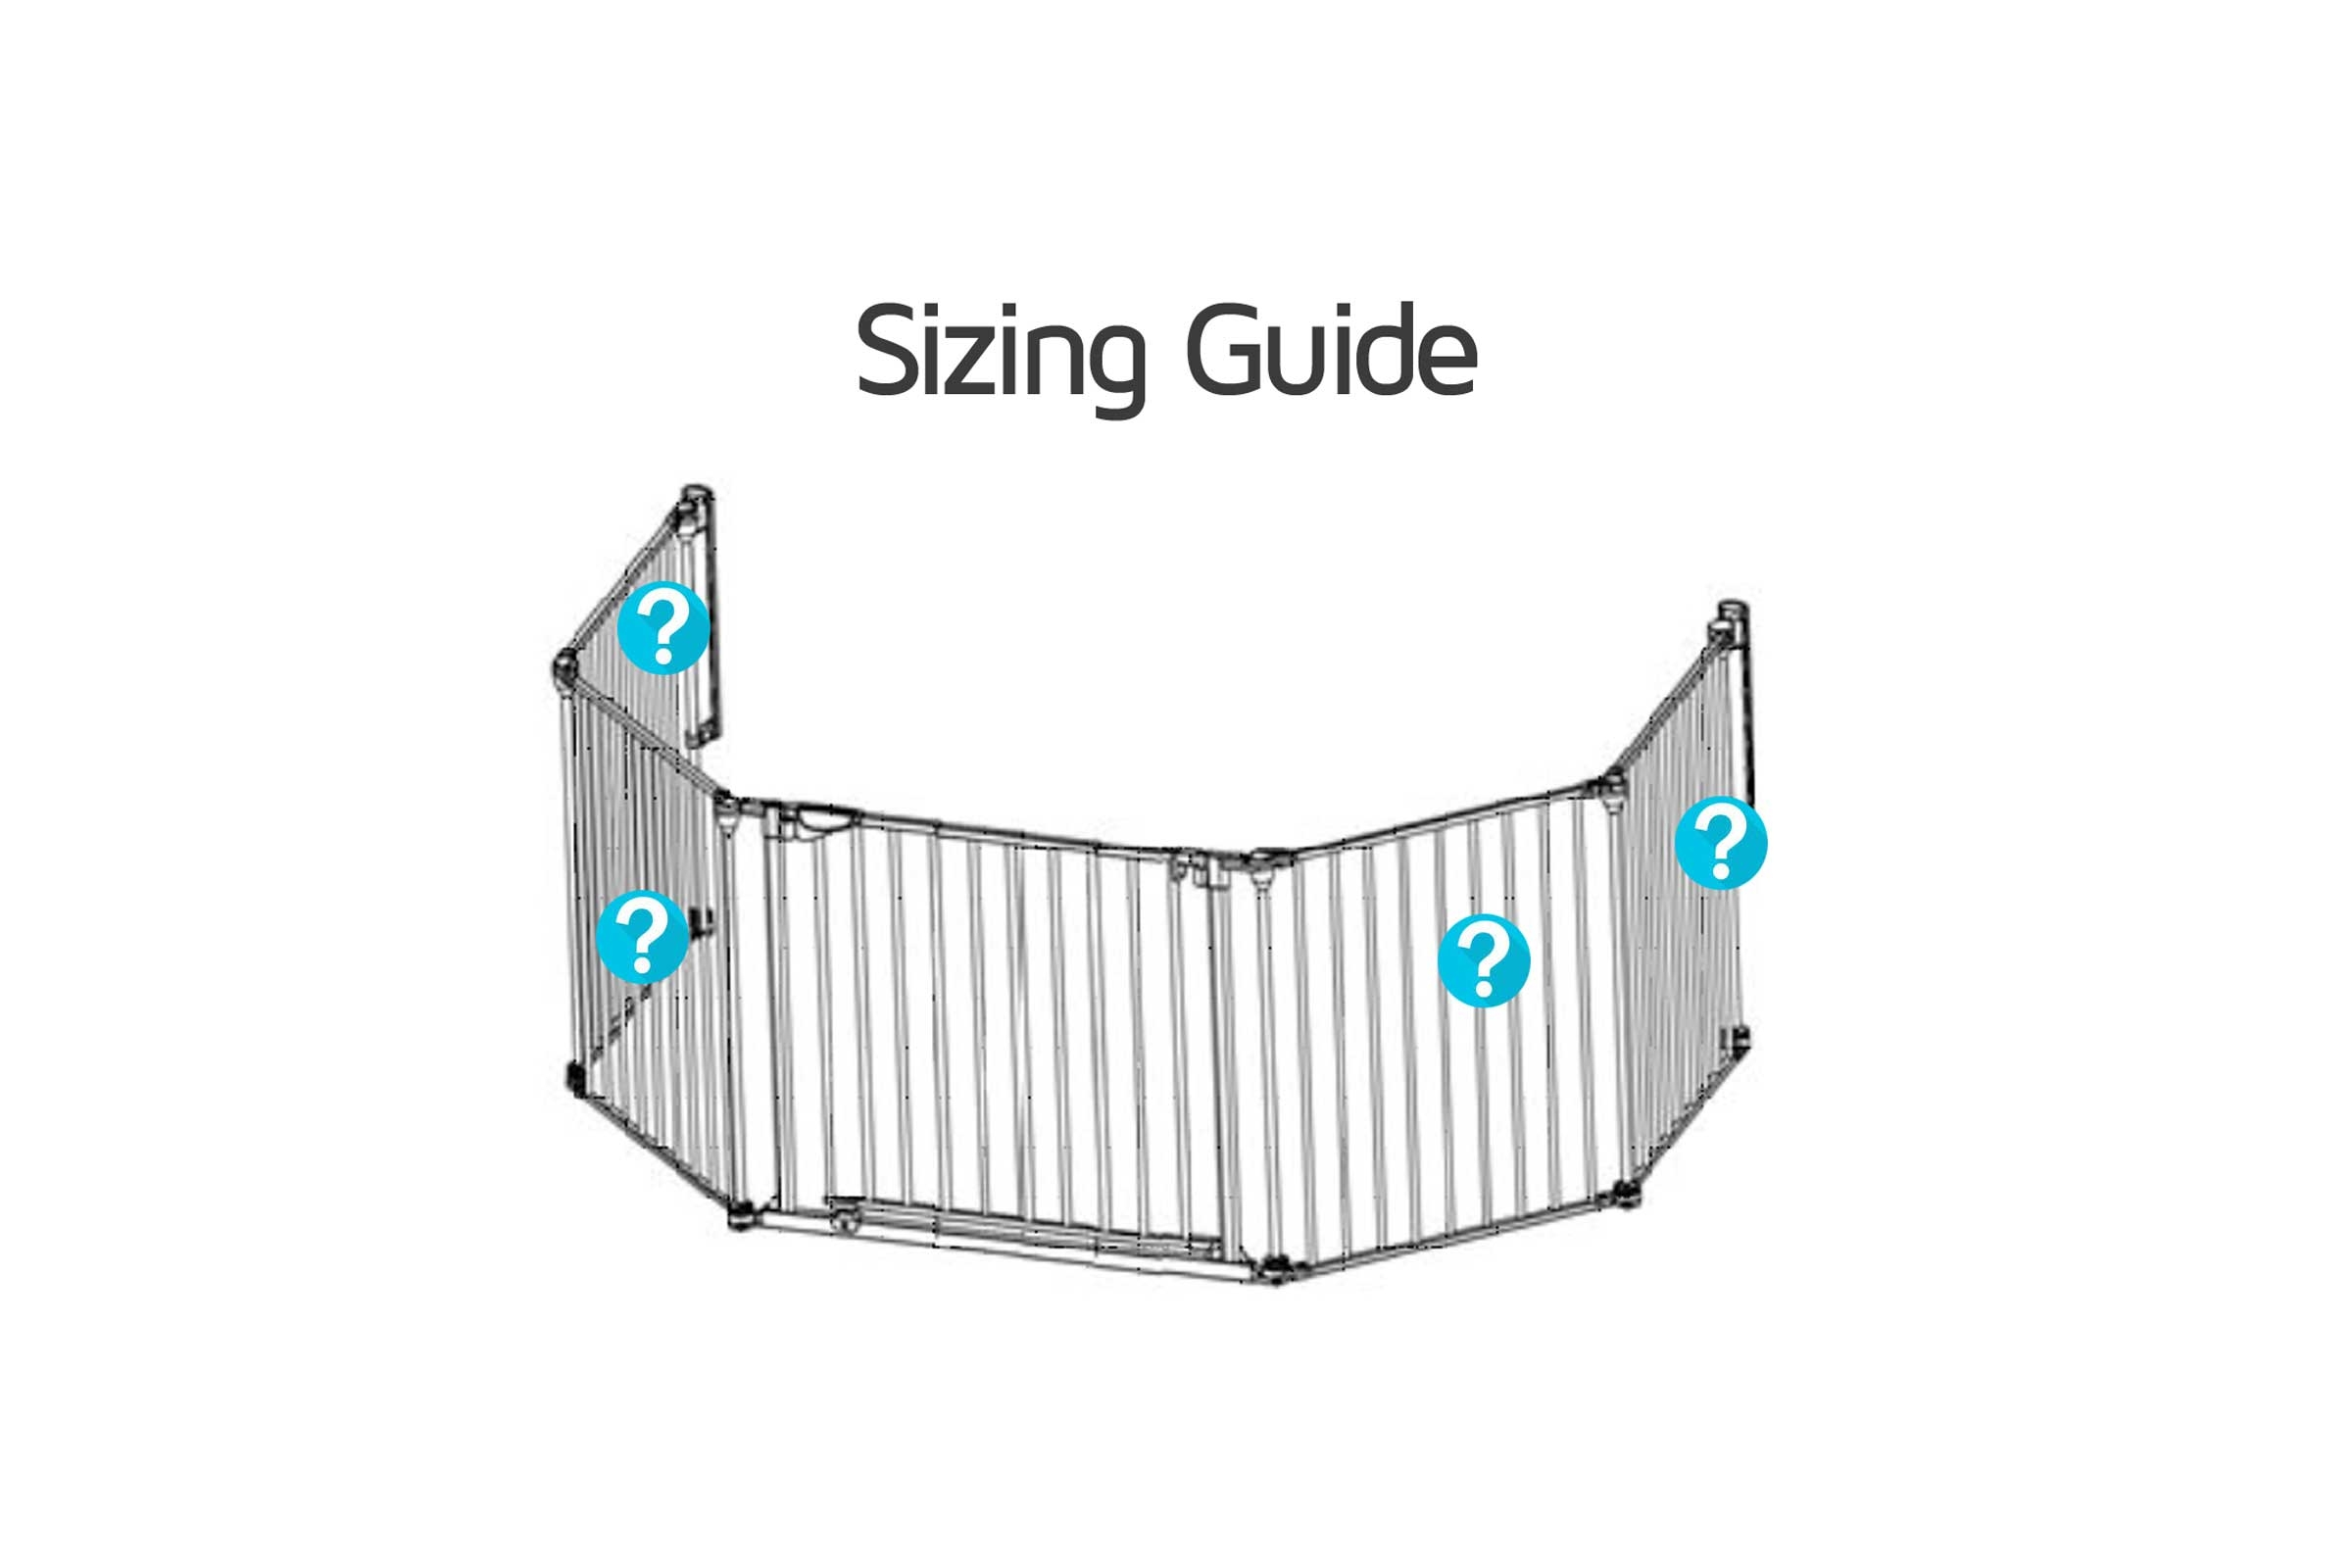 baby fireguard uk sizing guide